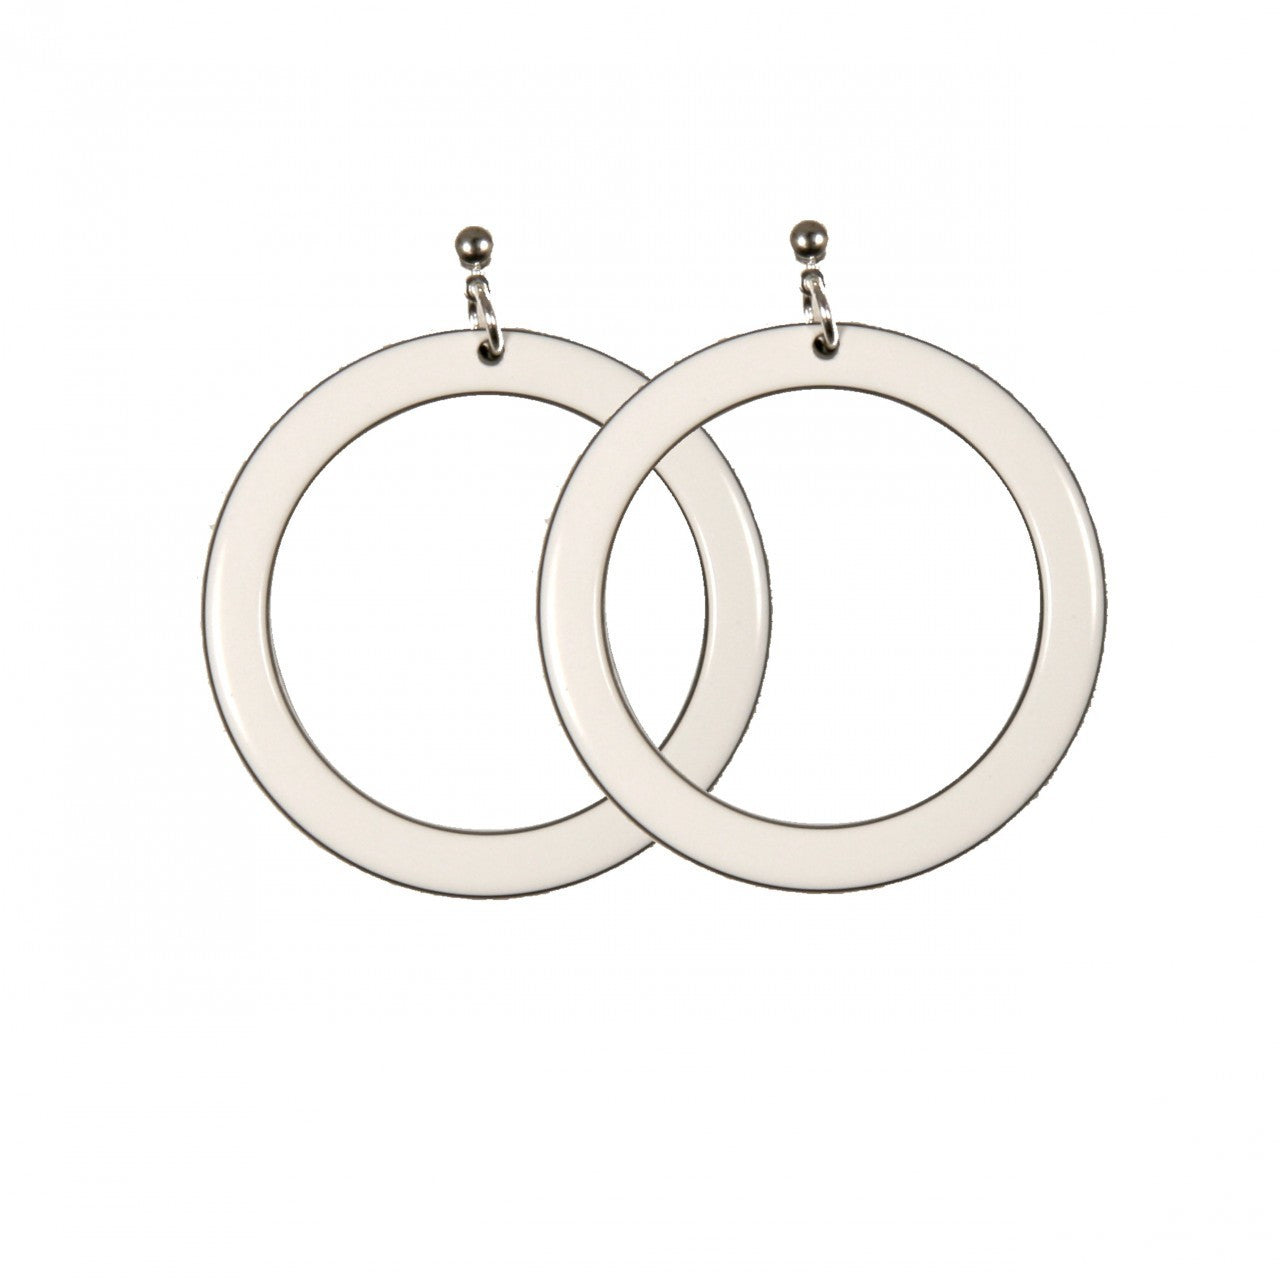 Paris Mode Hand- crafted Earrings